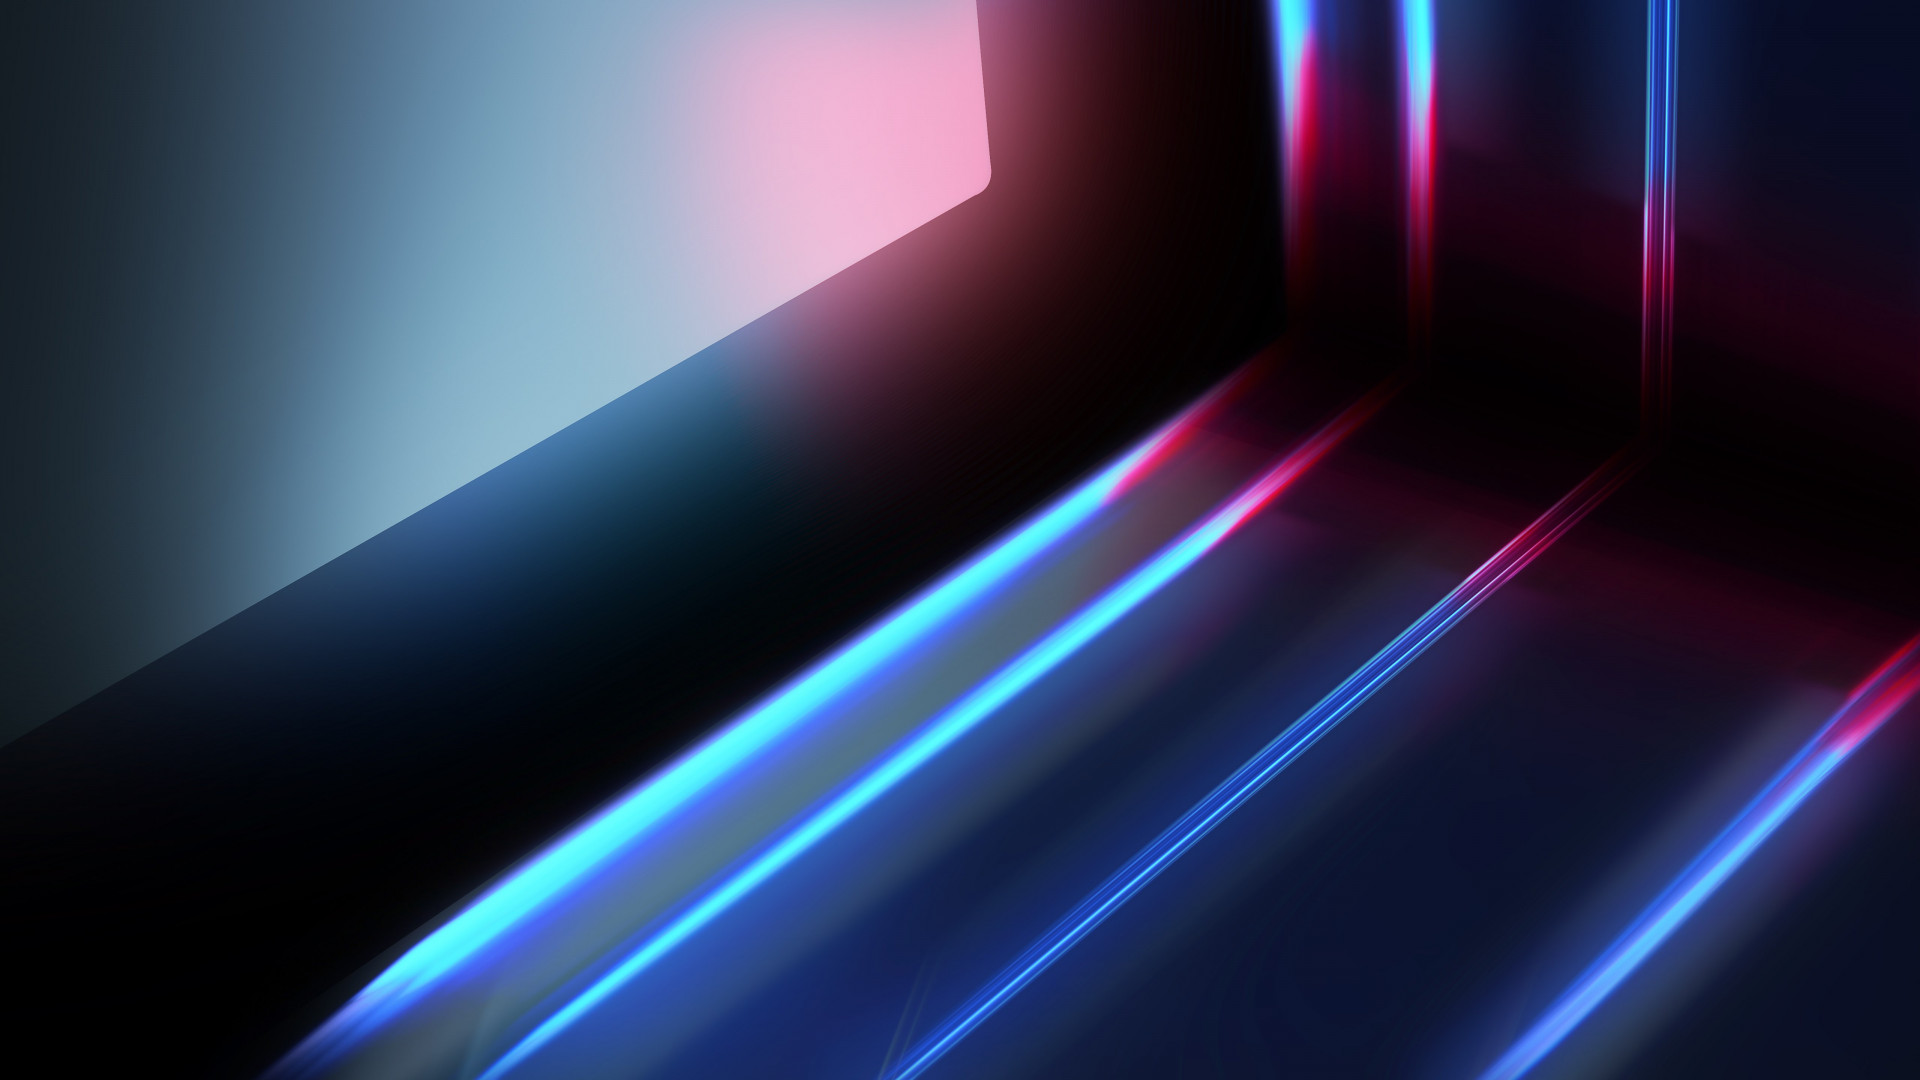 Download Wallpaper Abstract Blue Red Lights 1920x1080